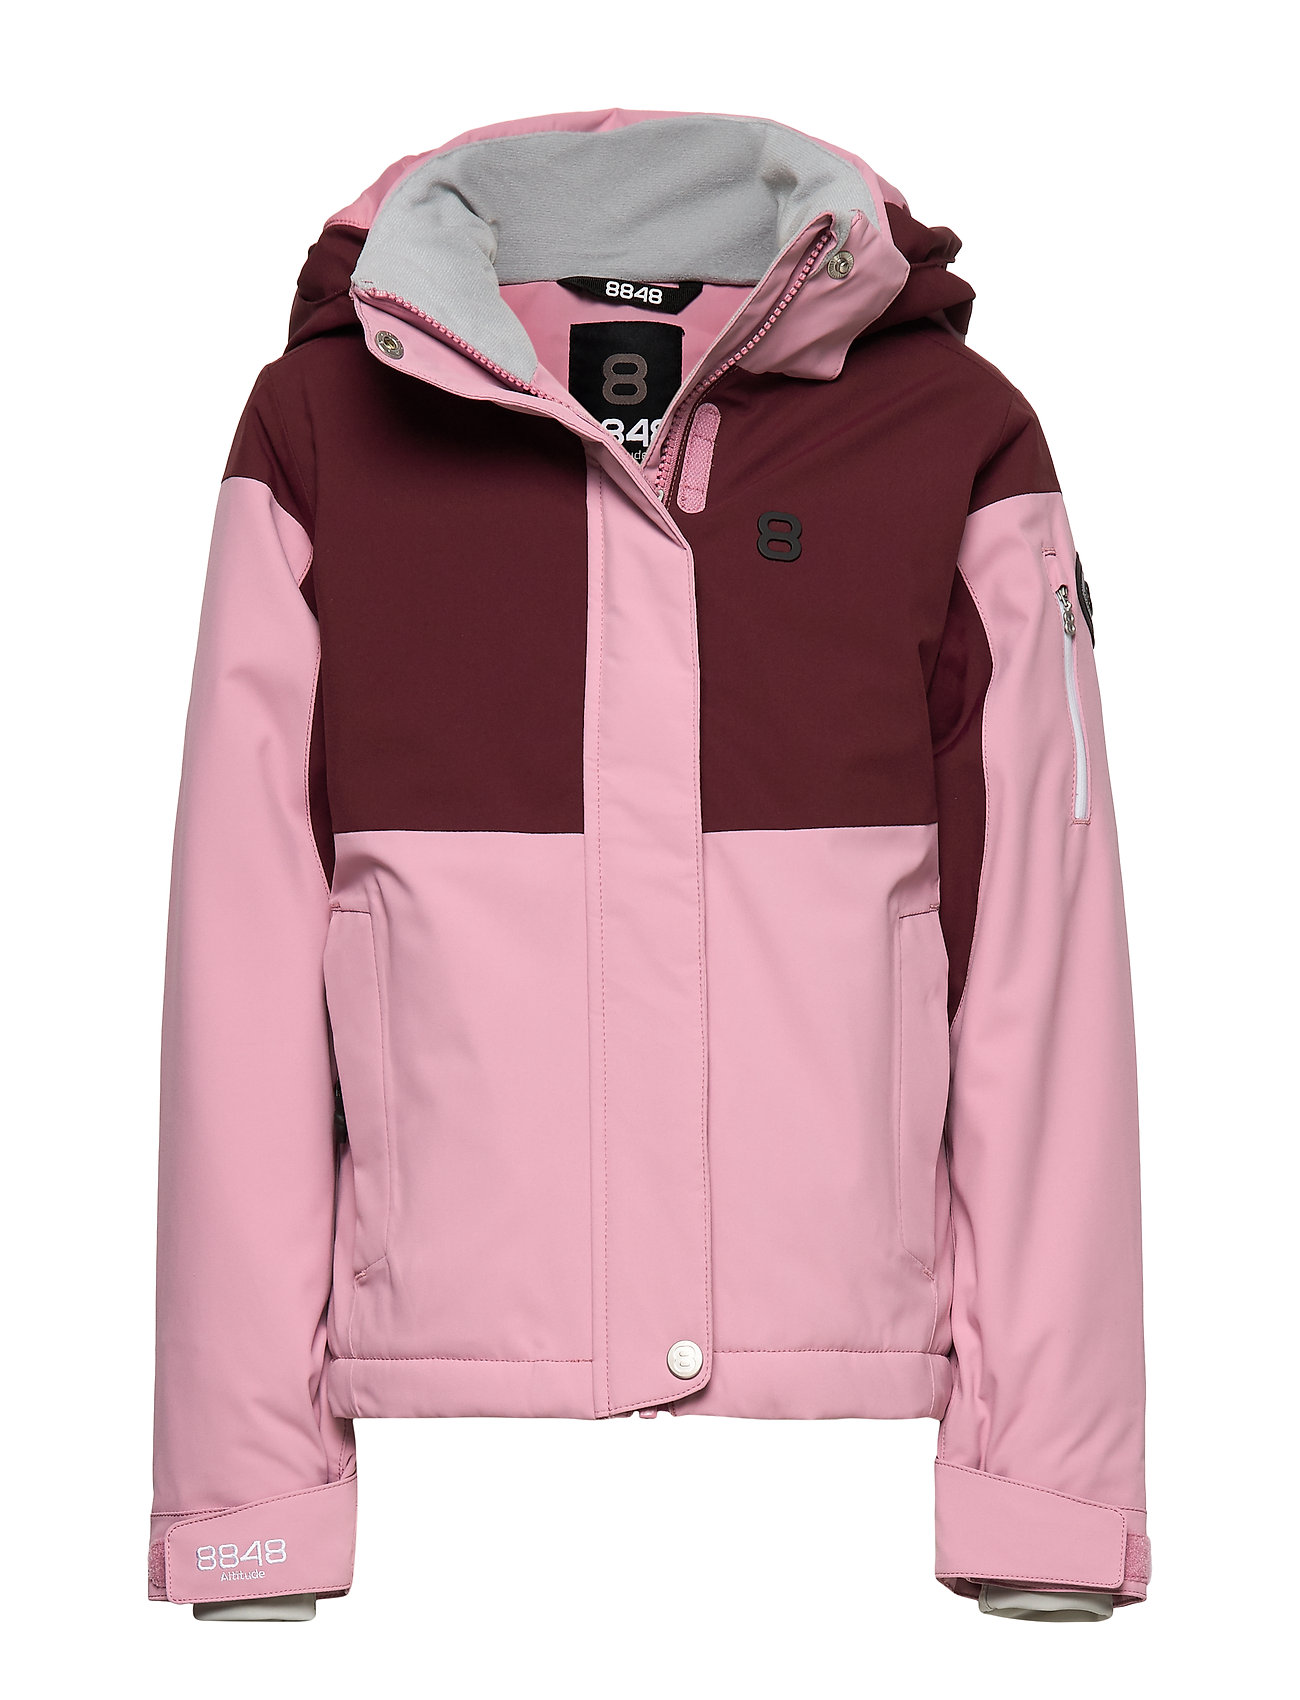 8848 Altitude Florina JR Jacket - ROSE